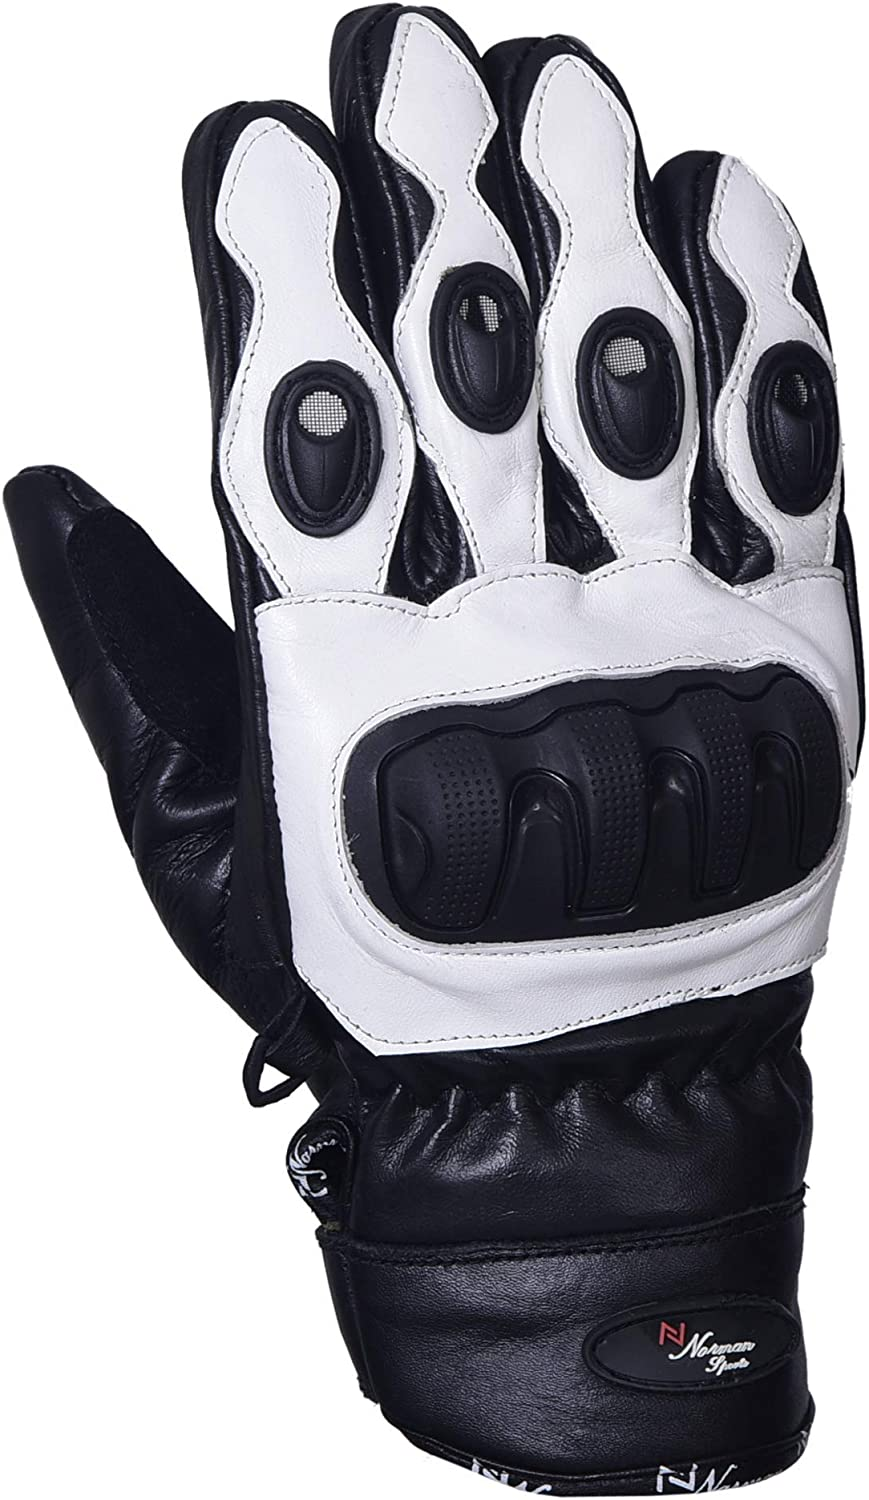 Short Leather Knuckle Protection Motorbike Motorcycle Gloves White Leather